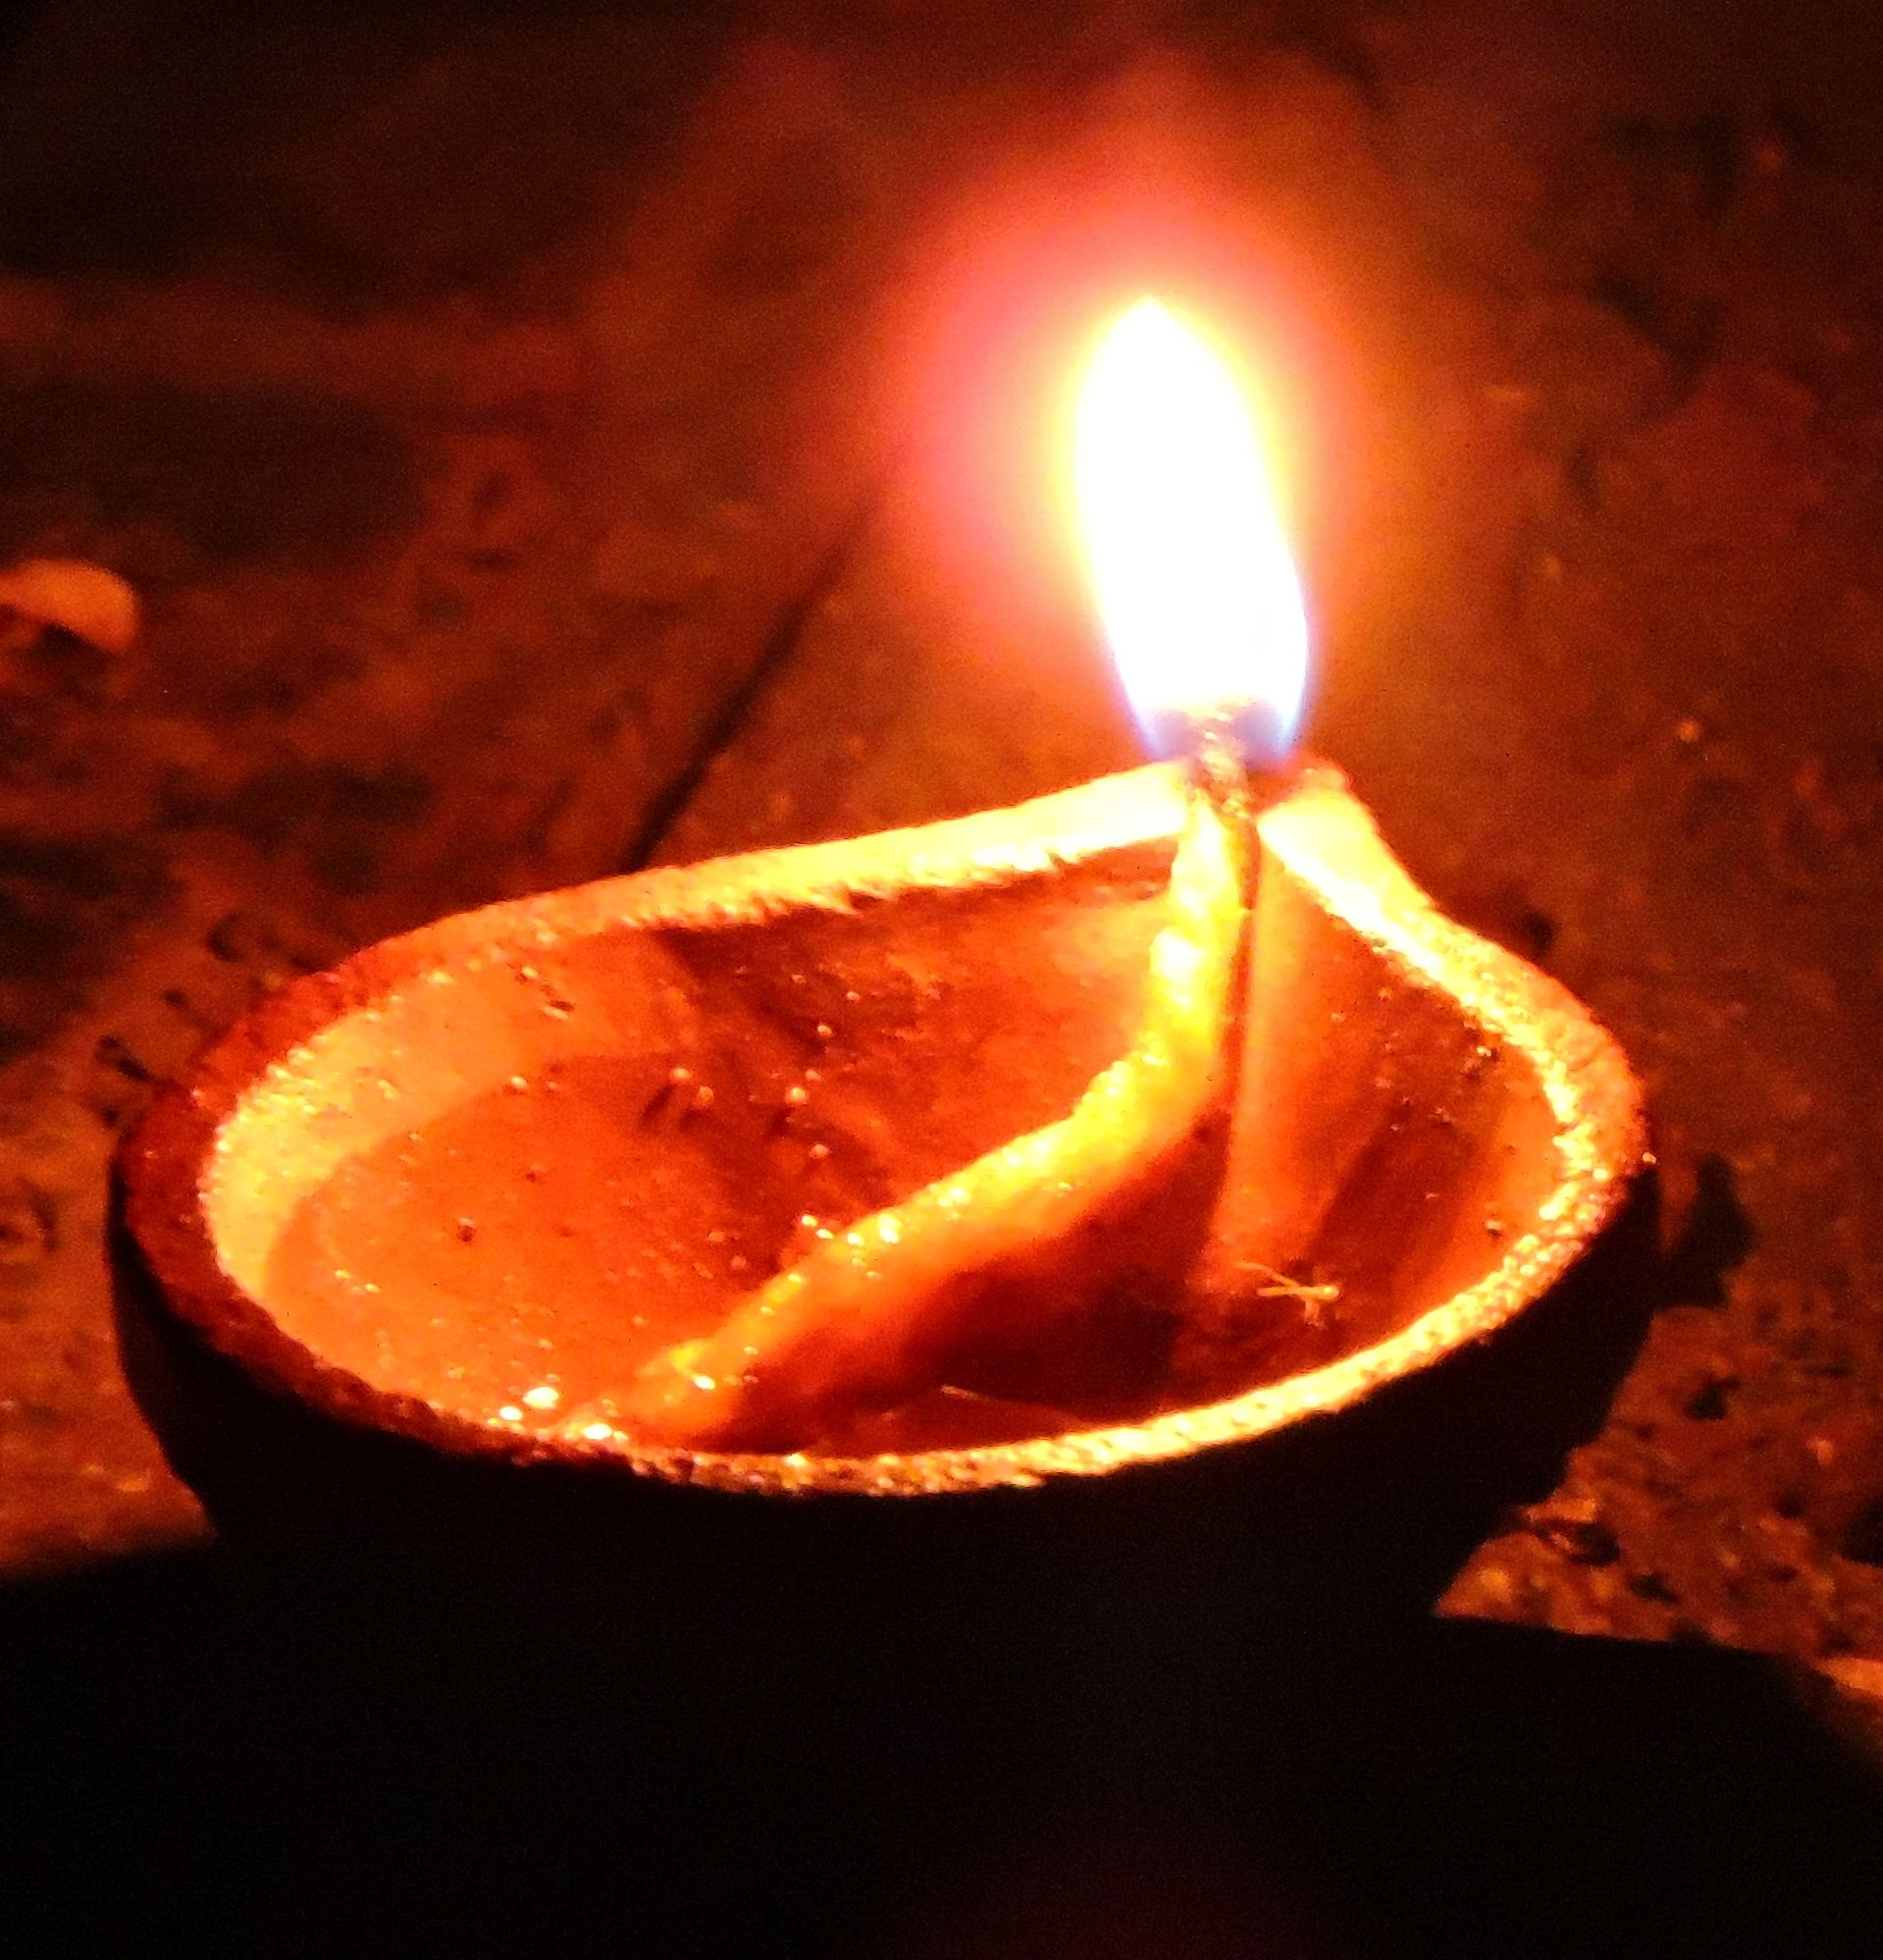 Oil lamp karthigai deepam festival tamil nadu for Agal vilakku decoration